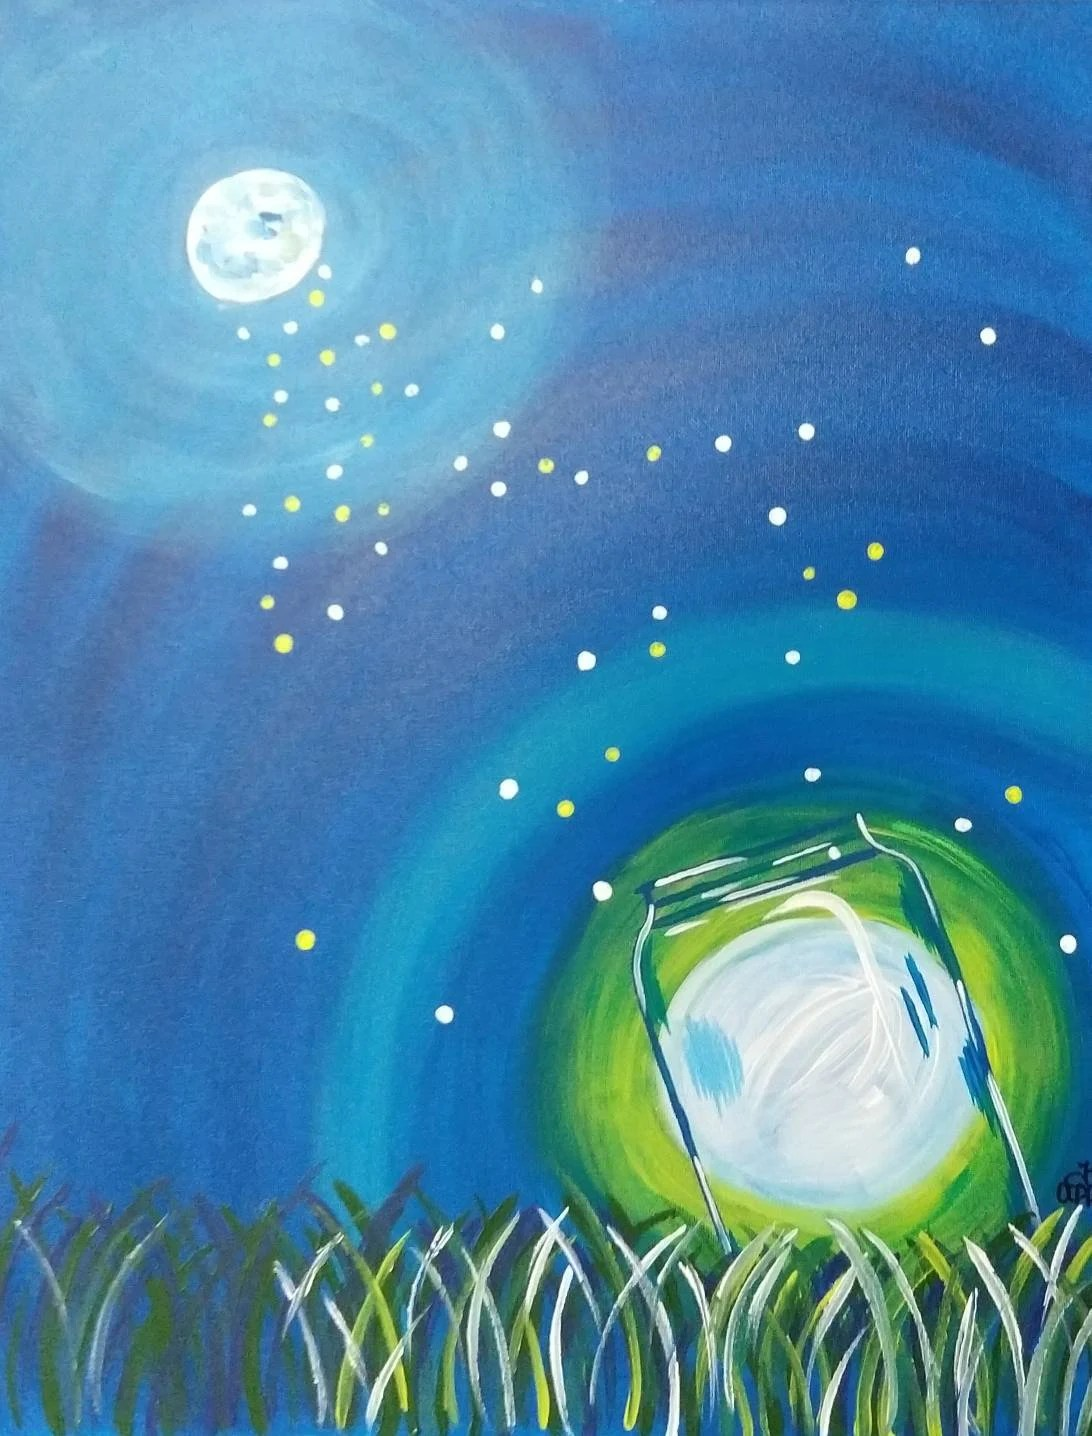 Firefly Jar Art Firefly Jar Painting 16x20 Inch Painting Summer Wall Decor Fireflies Art Mason Jar Art Original Painting